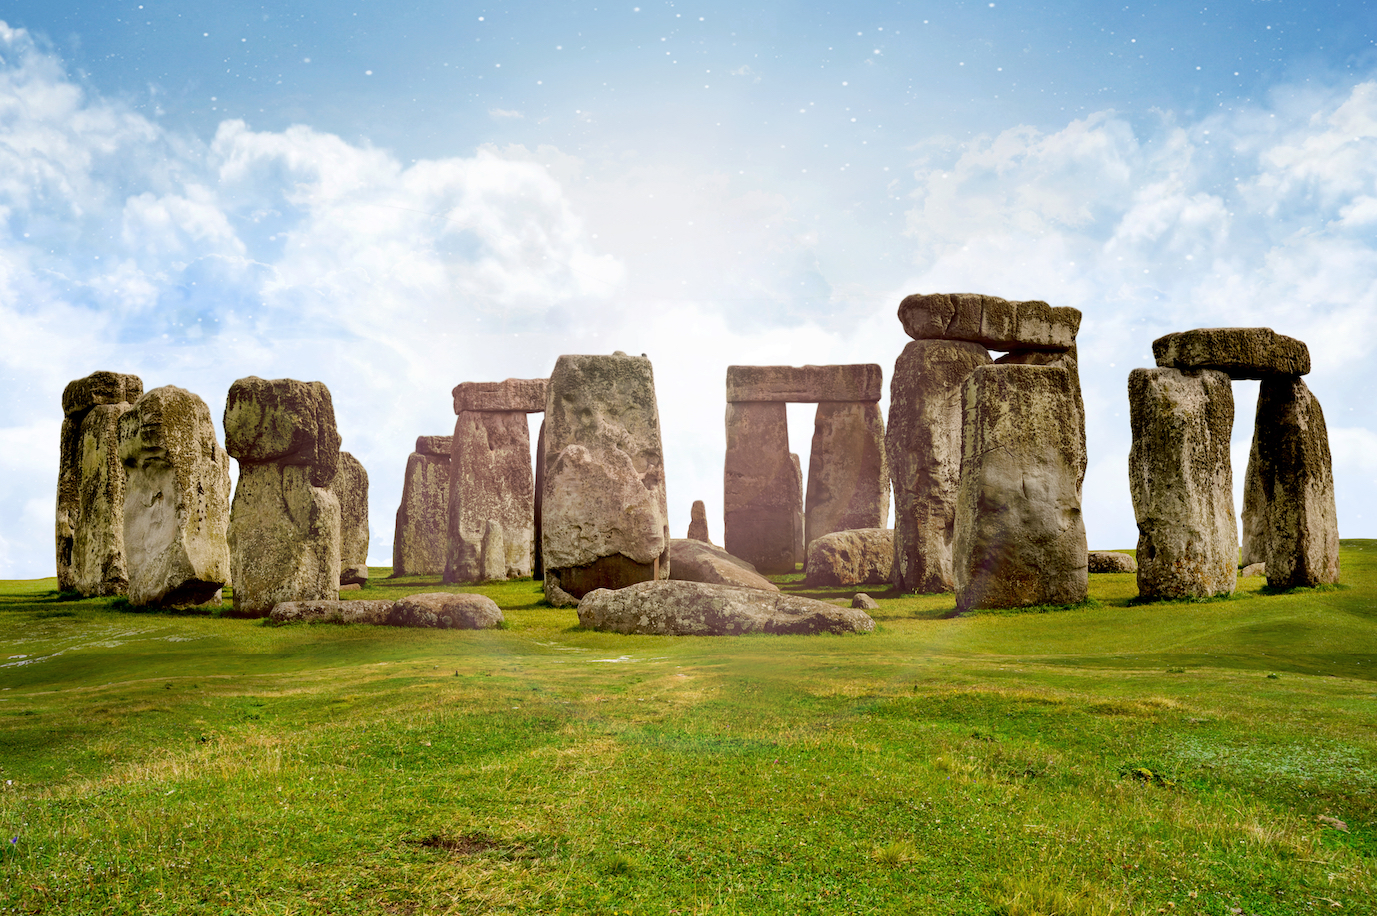 A new study led by the University of Oxford may help to unravel the mystery about who is buried at Stonehenge and how they got there.